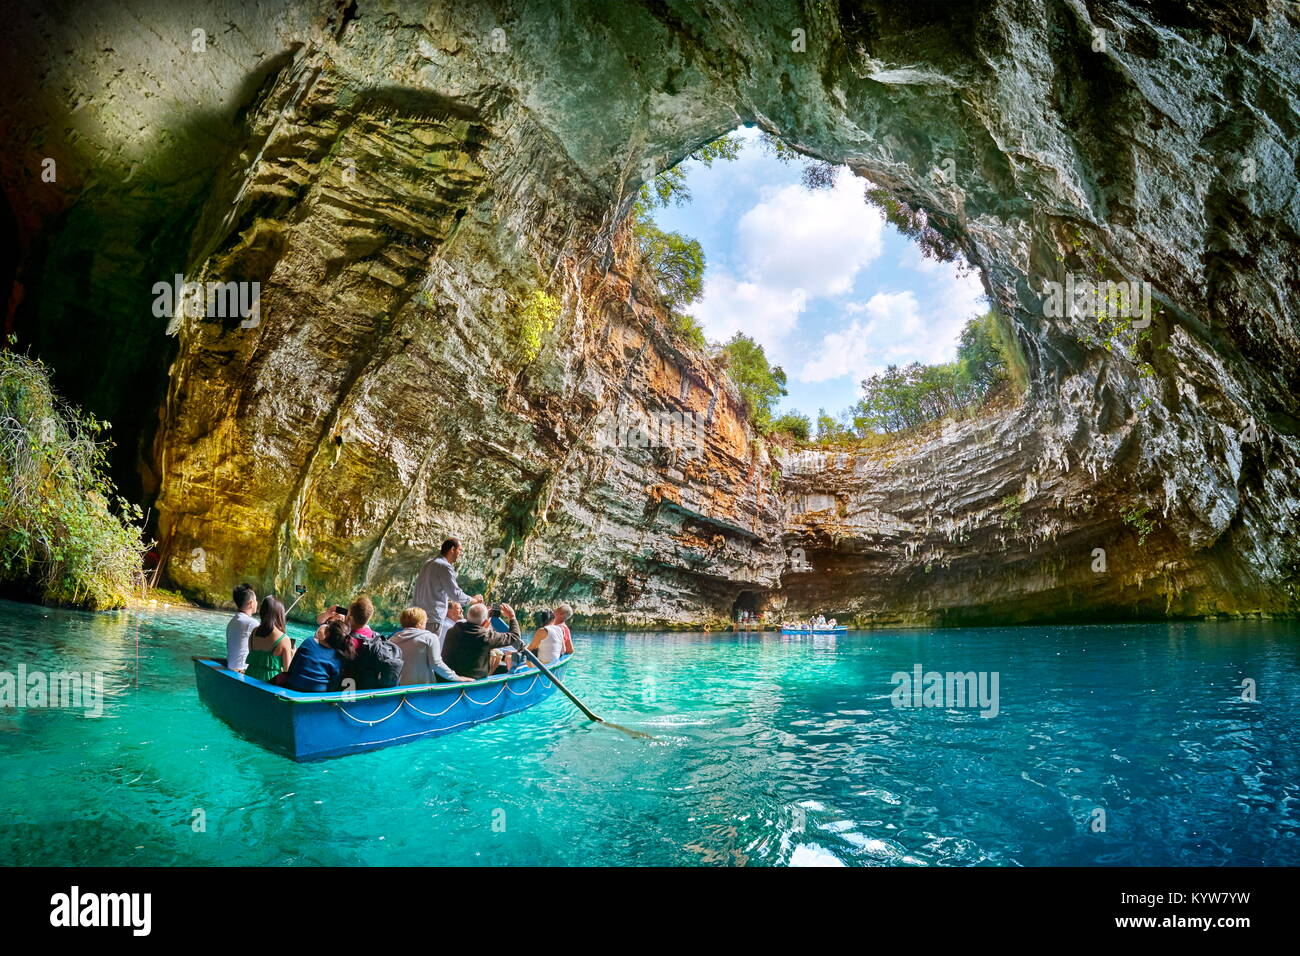 Tourist boat on the lake in Melissani Cave, Kefalonia Island, Greece - Stock Image